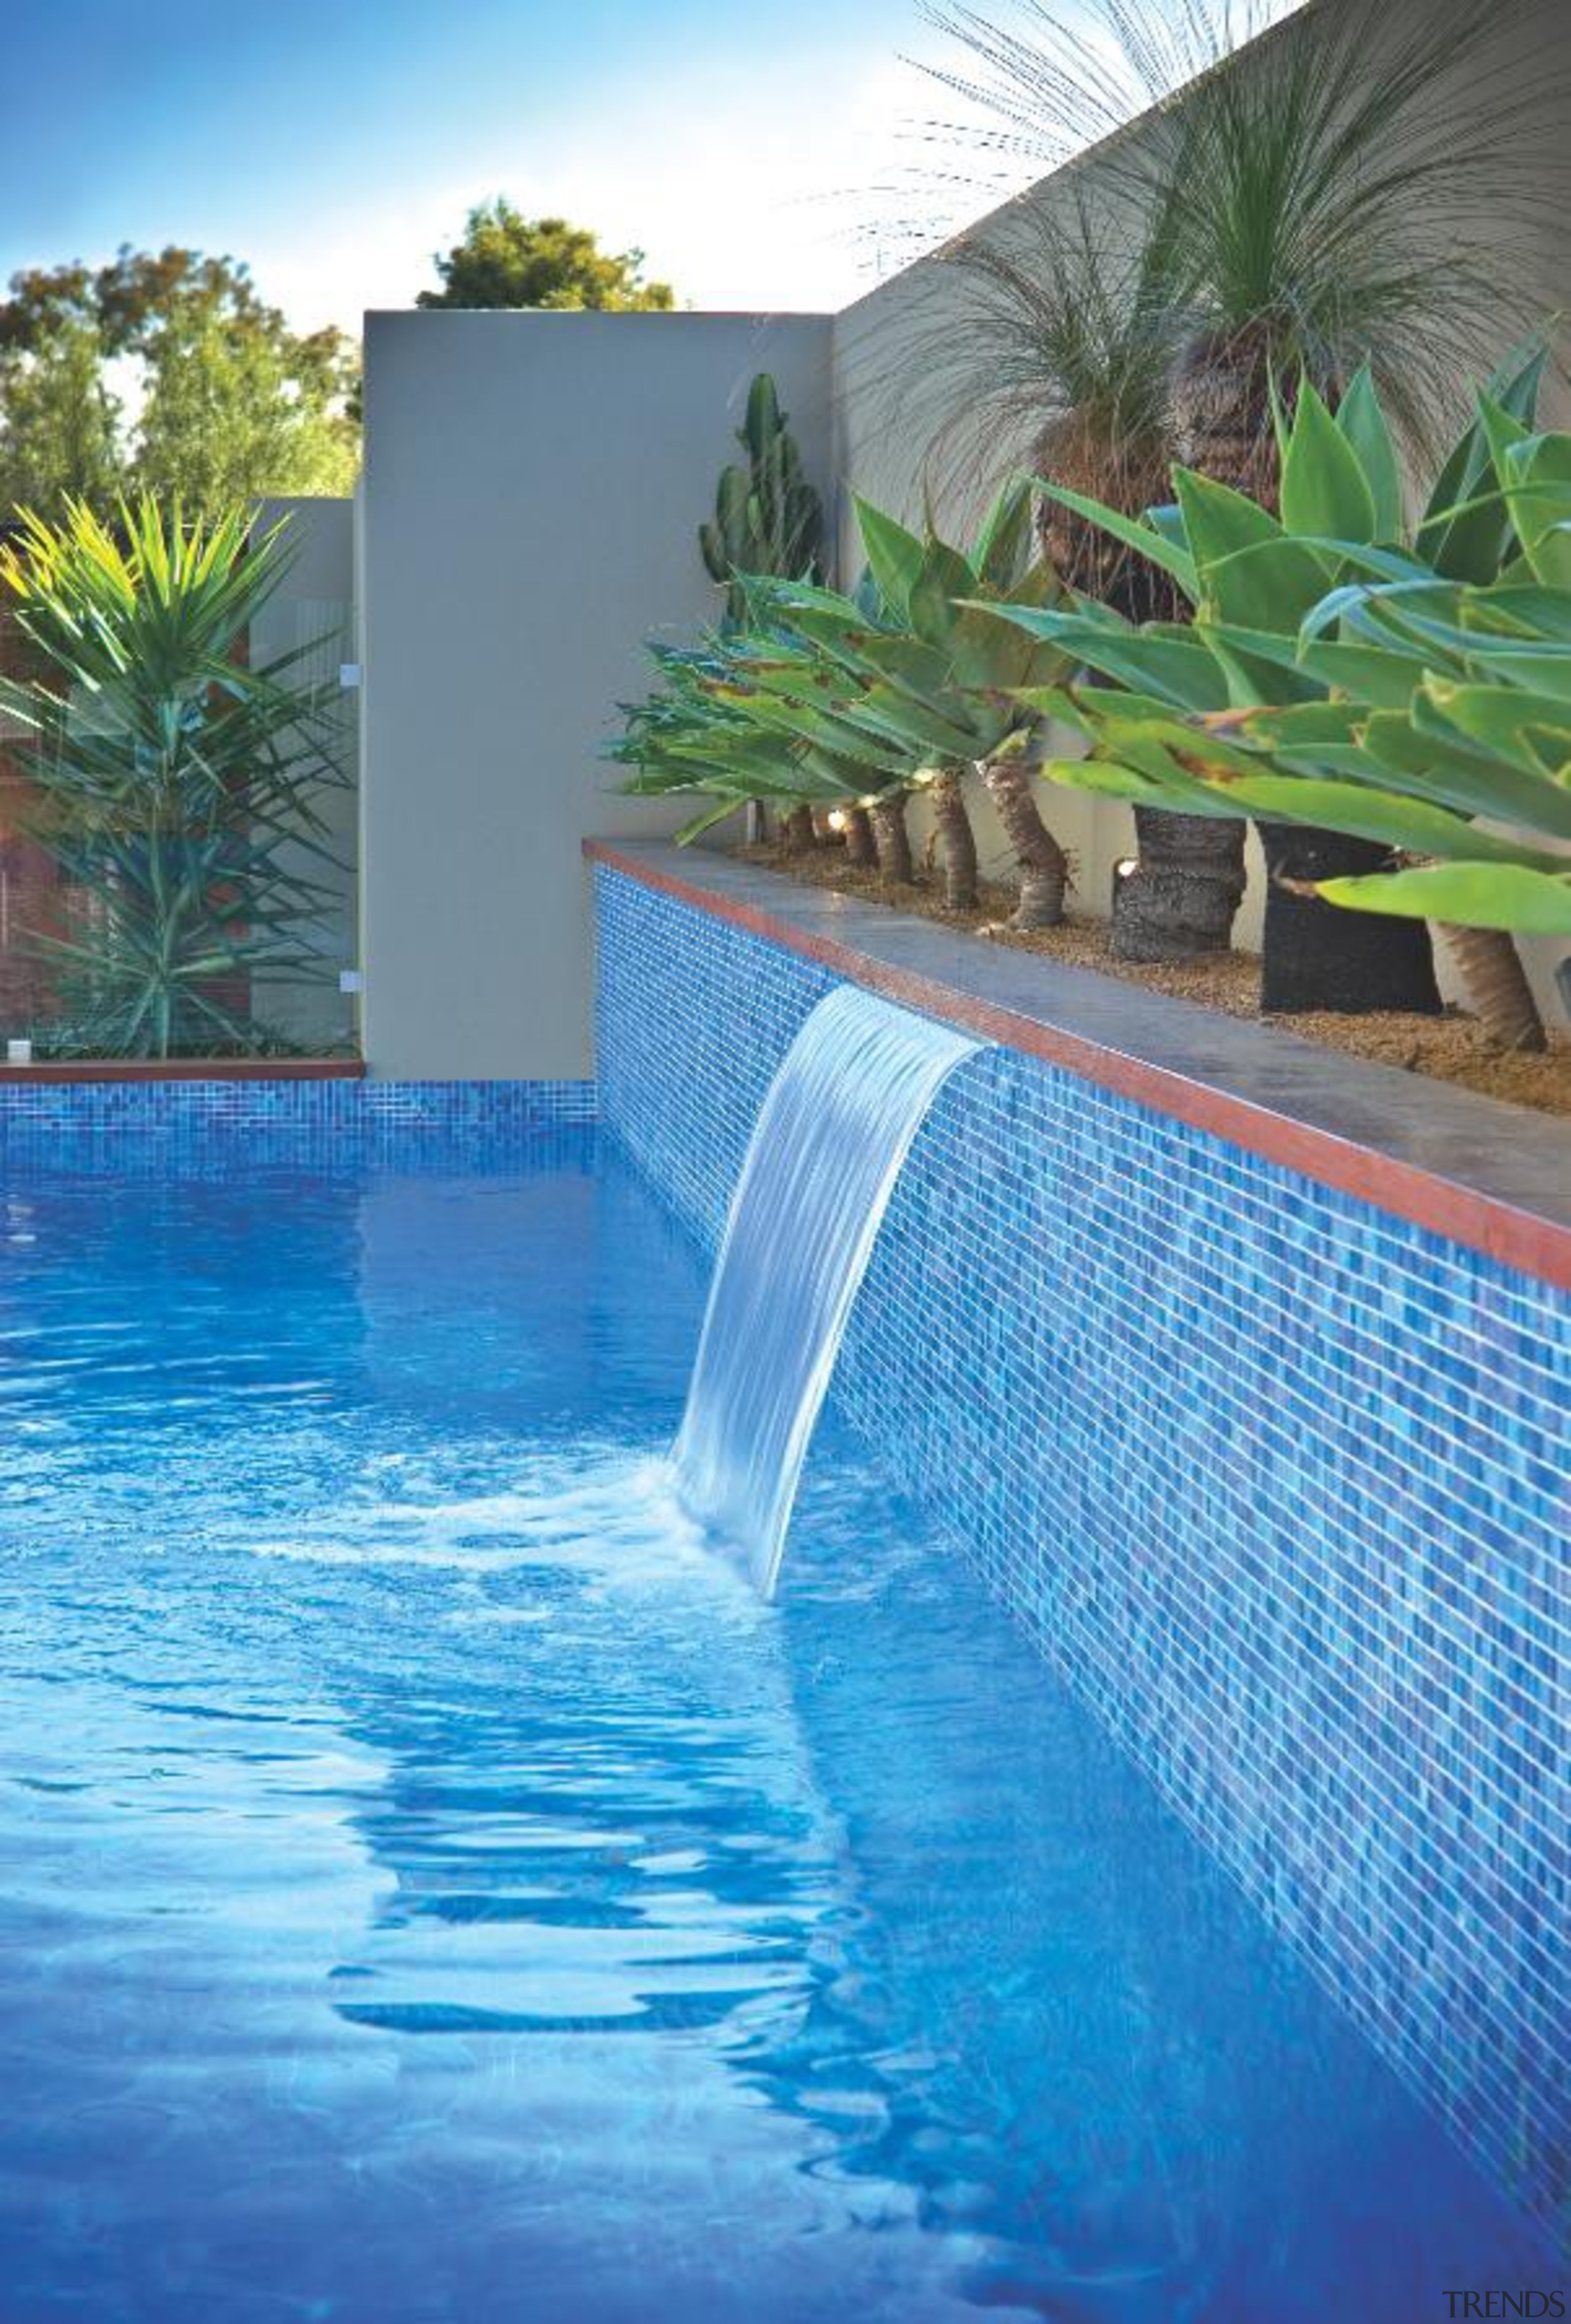 Bisazza swimming pool feature tiles - Bisazza Range leisure, majorelle blue, property, real estate, resort, swimming pool, water, water feature, water resources, watercourse, teal